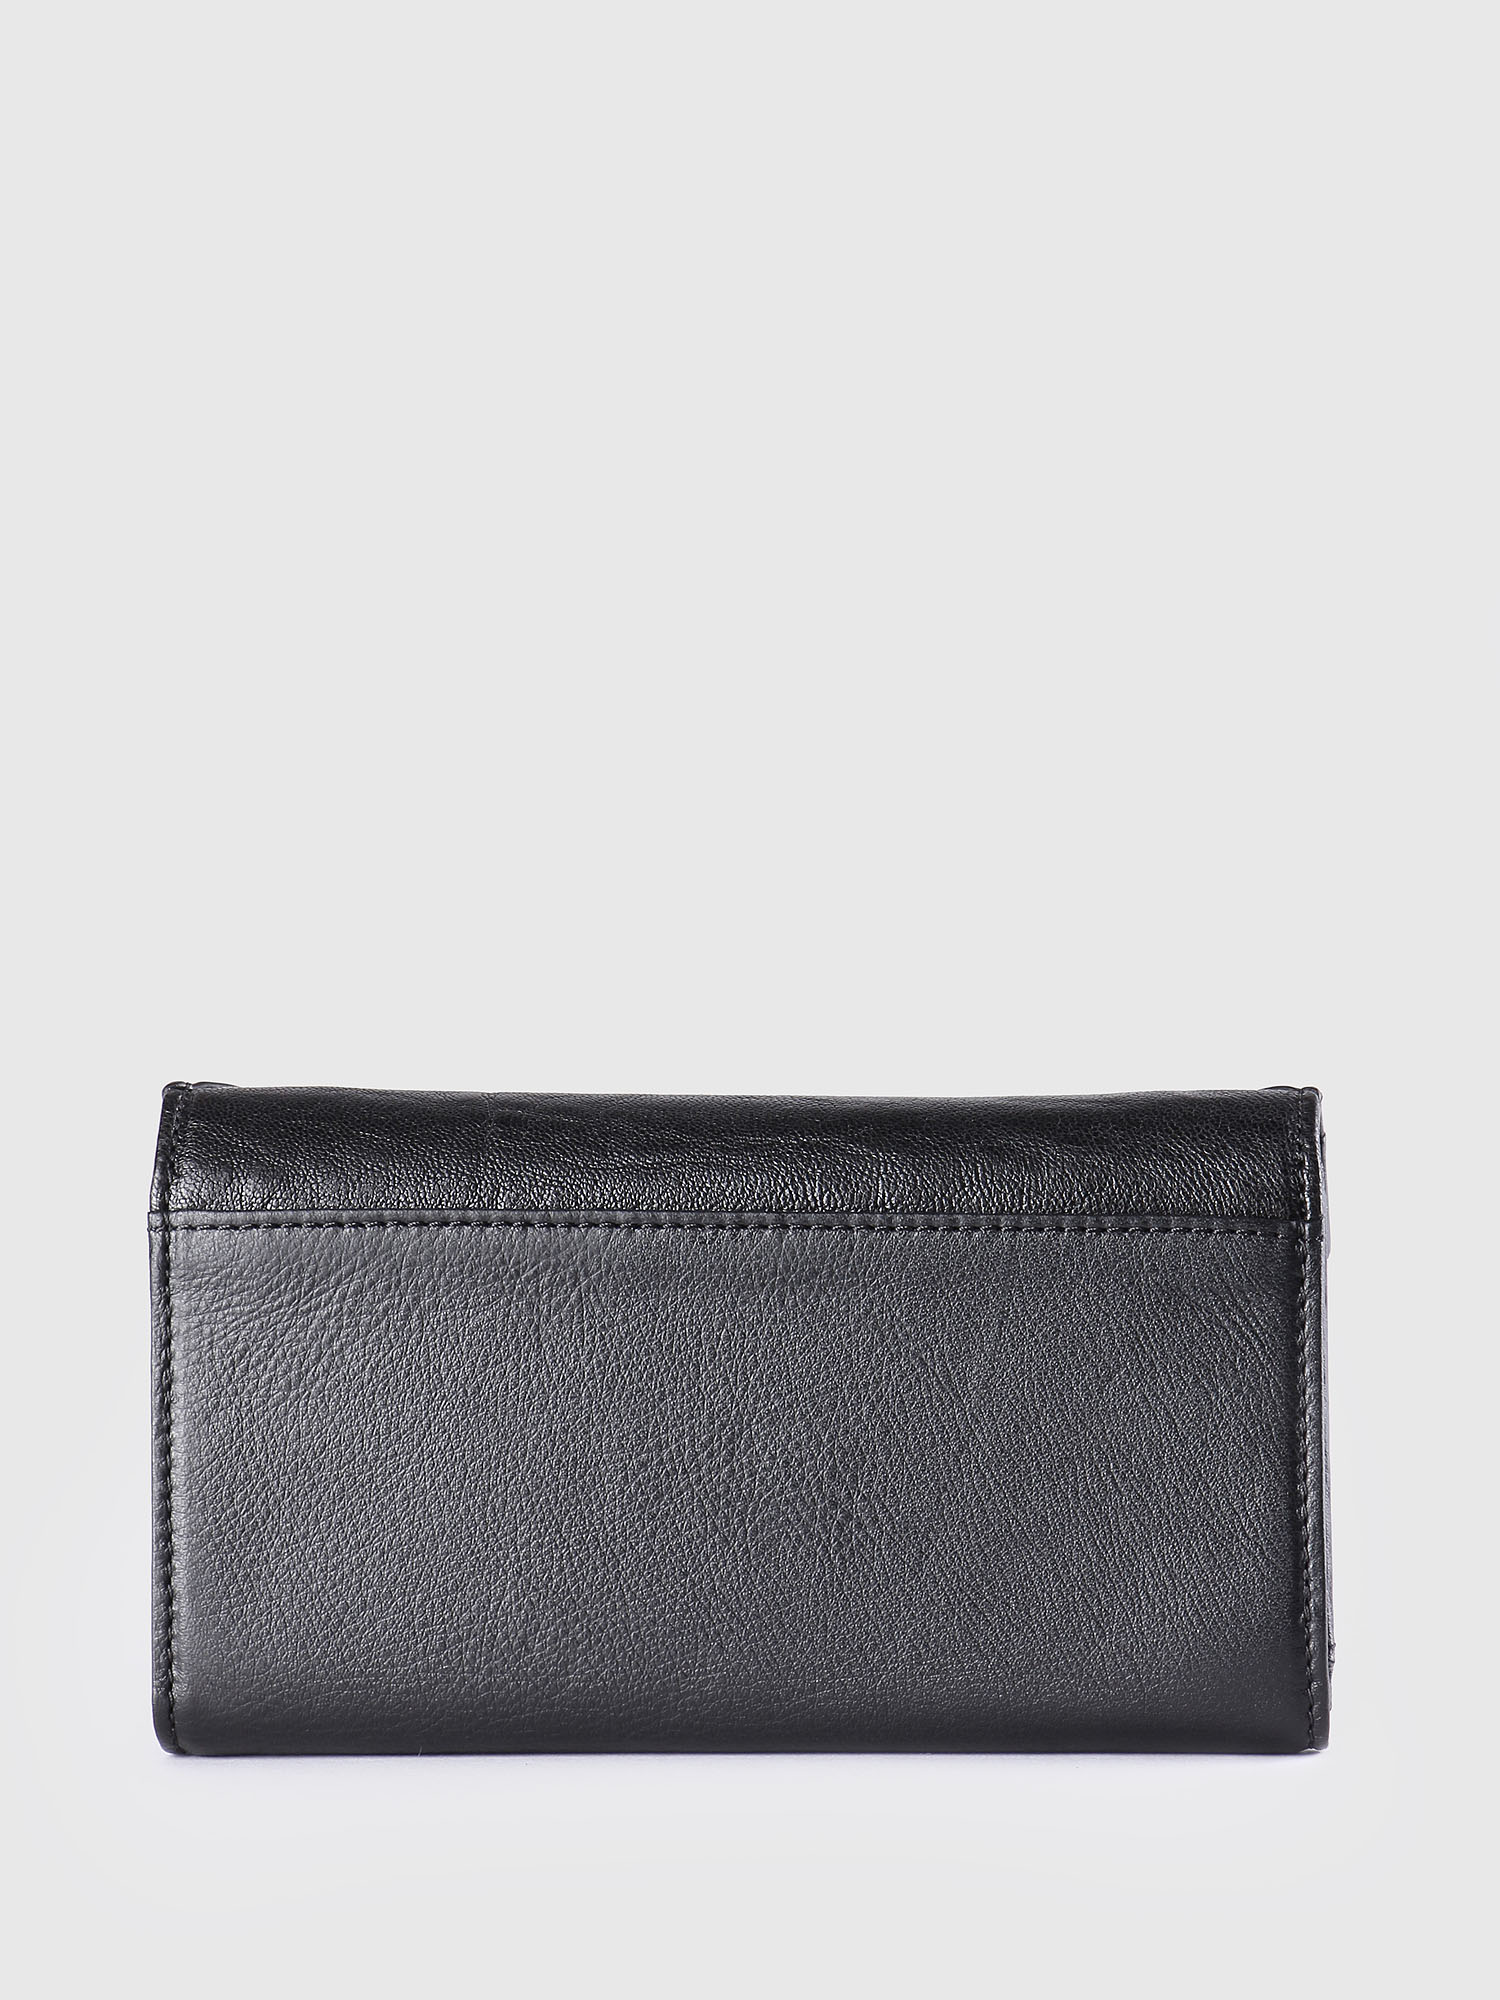 Diesel - GIPSI,  - Small Wallets - Image 2